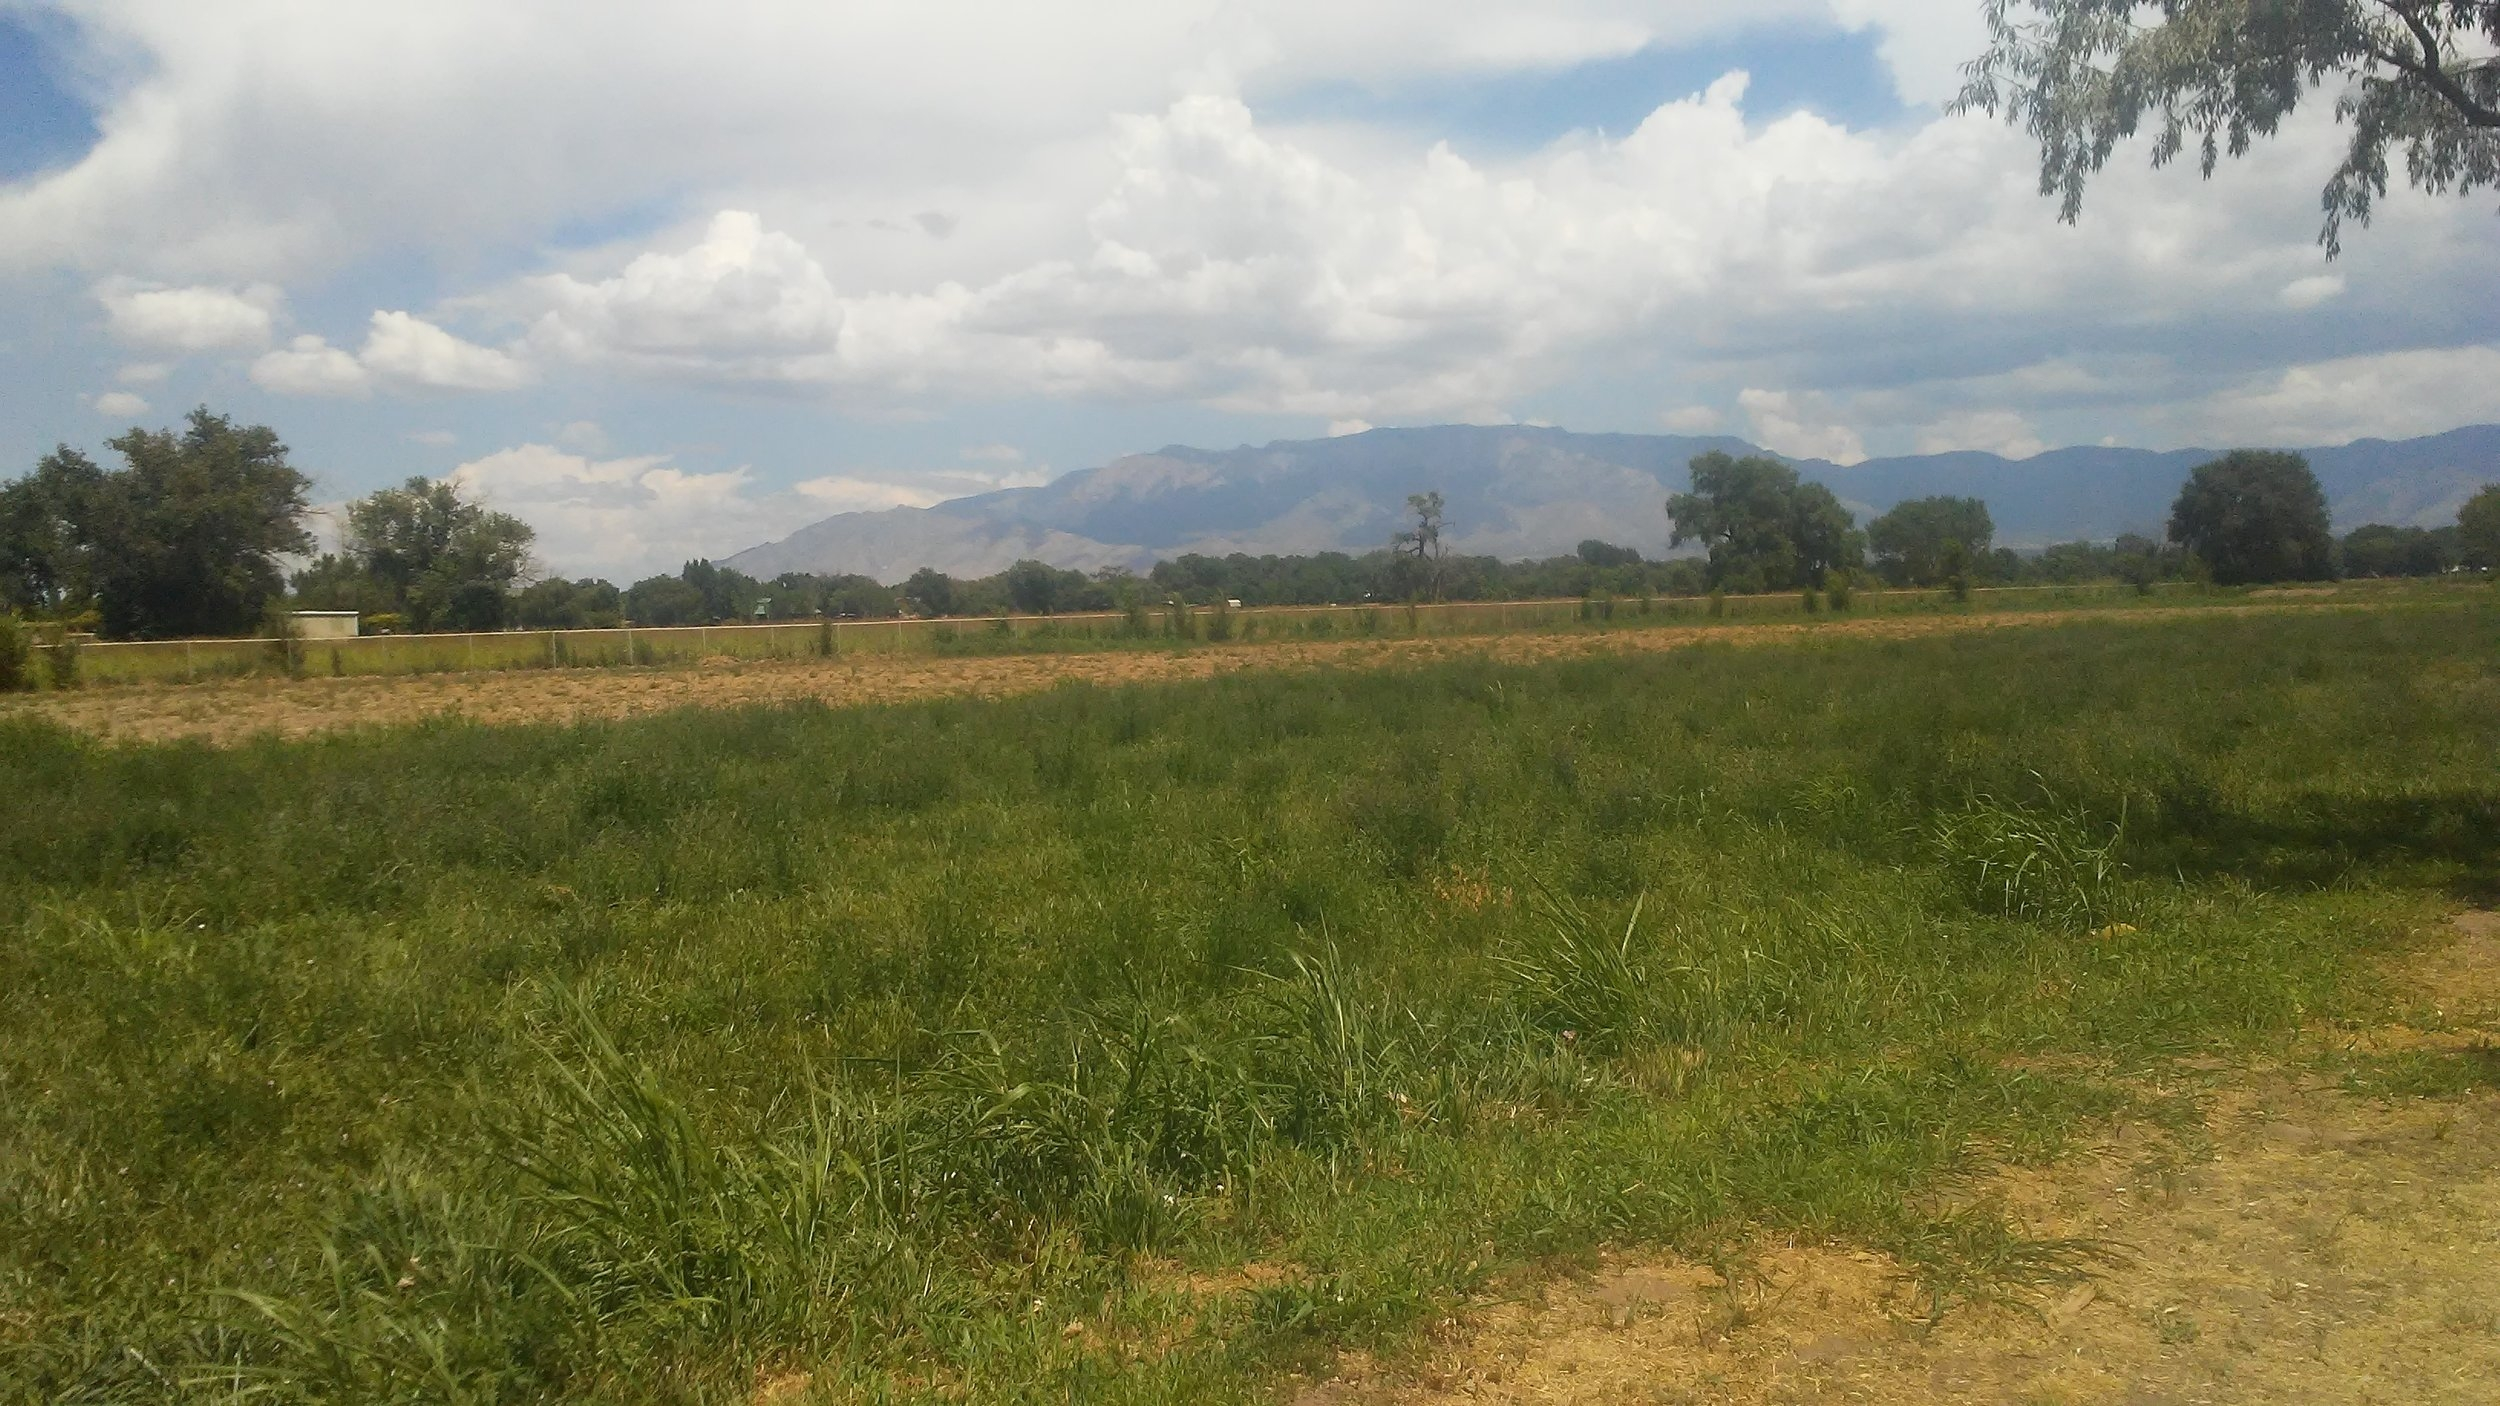 View of the Sandias from the Los Ranchos Agri-Nature Center